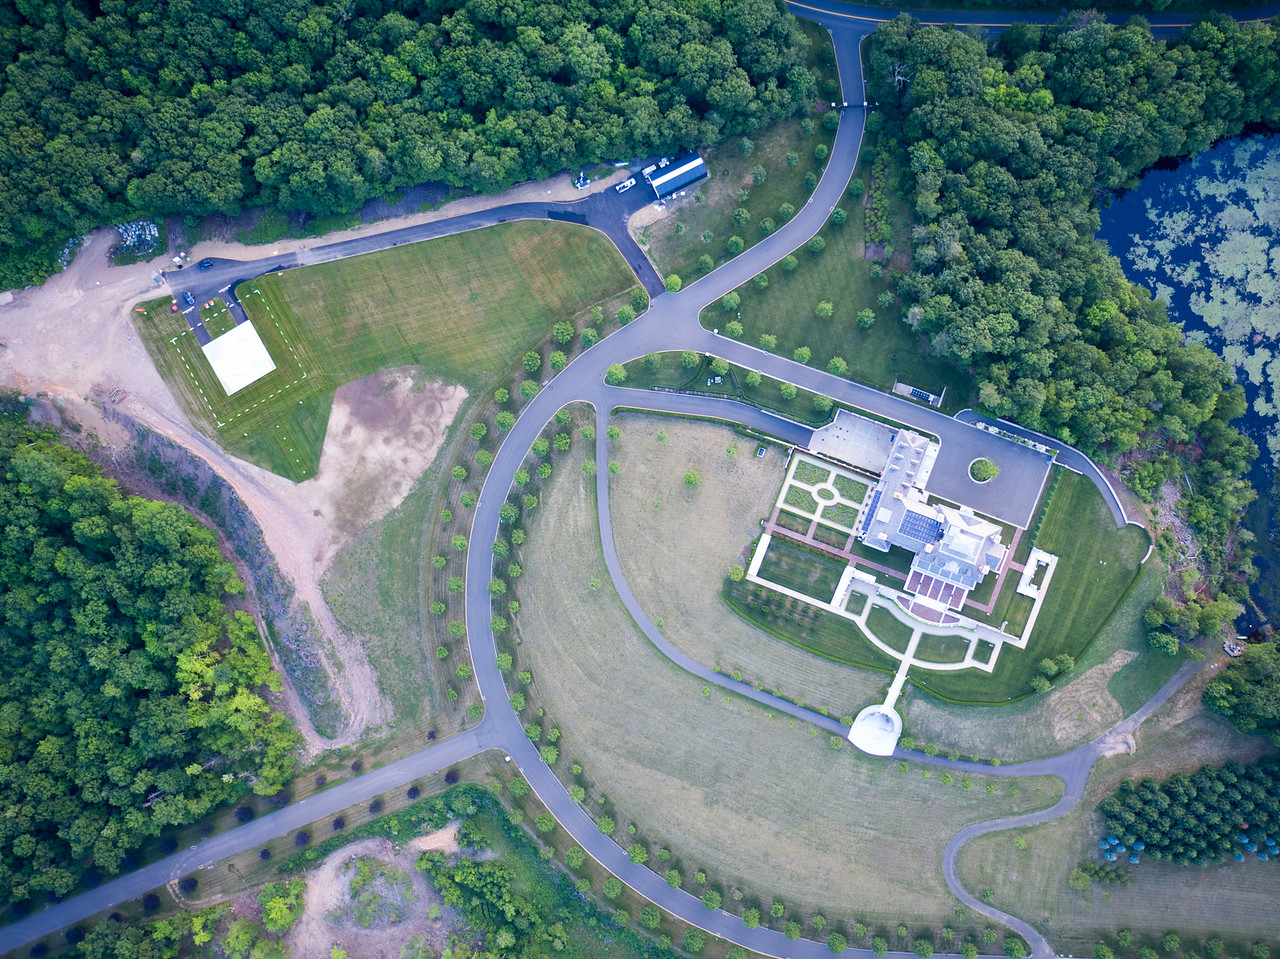 Helipad June 2016-0016